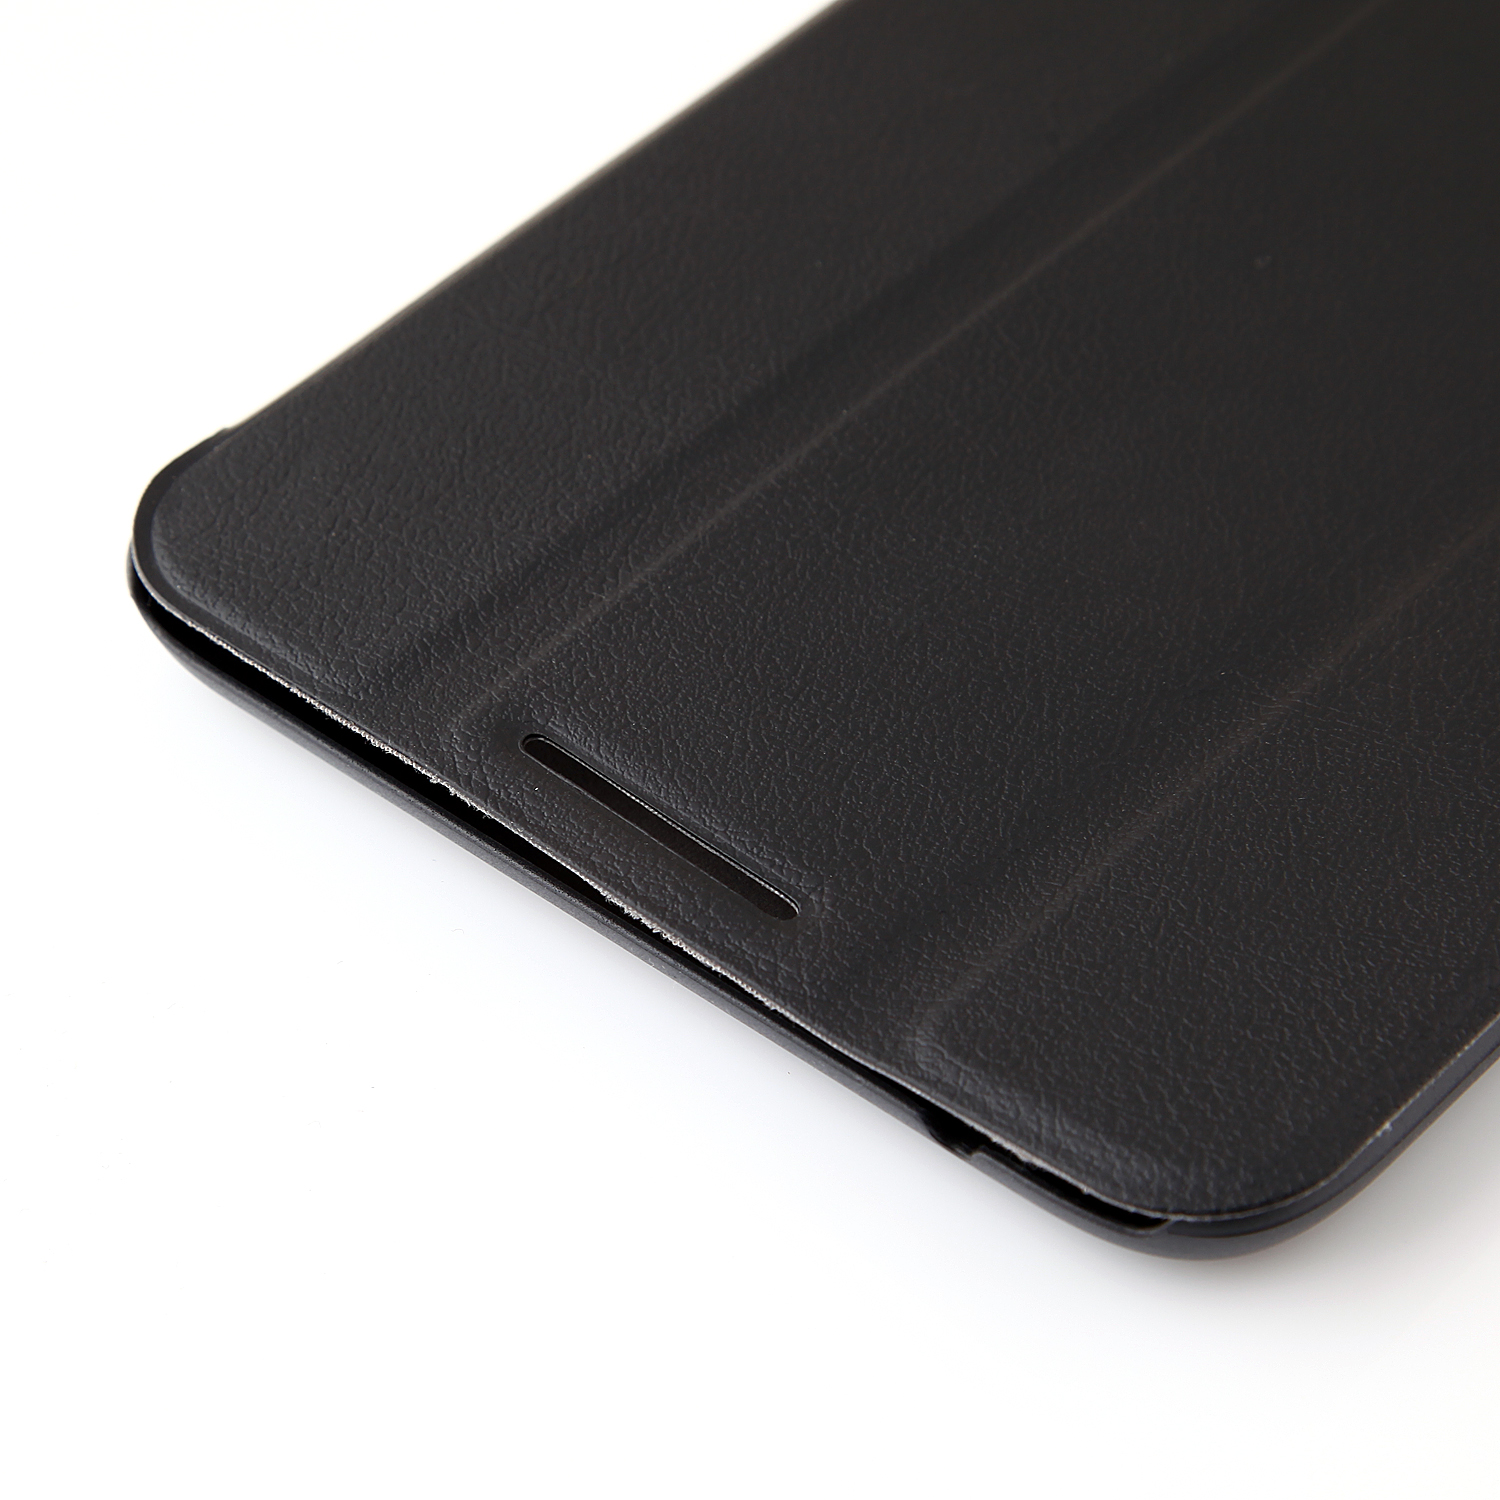 Protective PU Leather Stand Case Cover for Lenovo A3500 Tablet PC Black